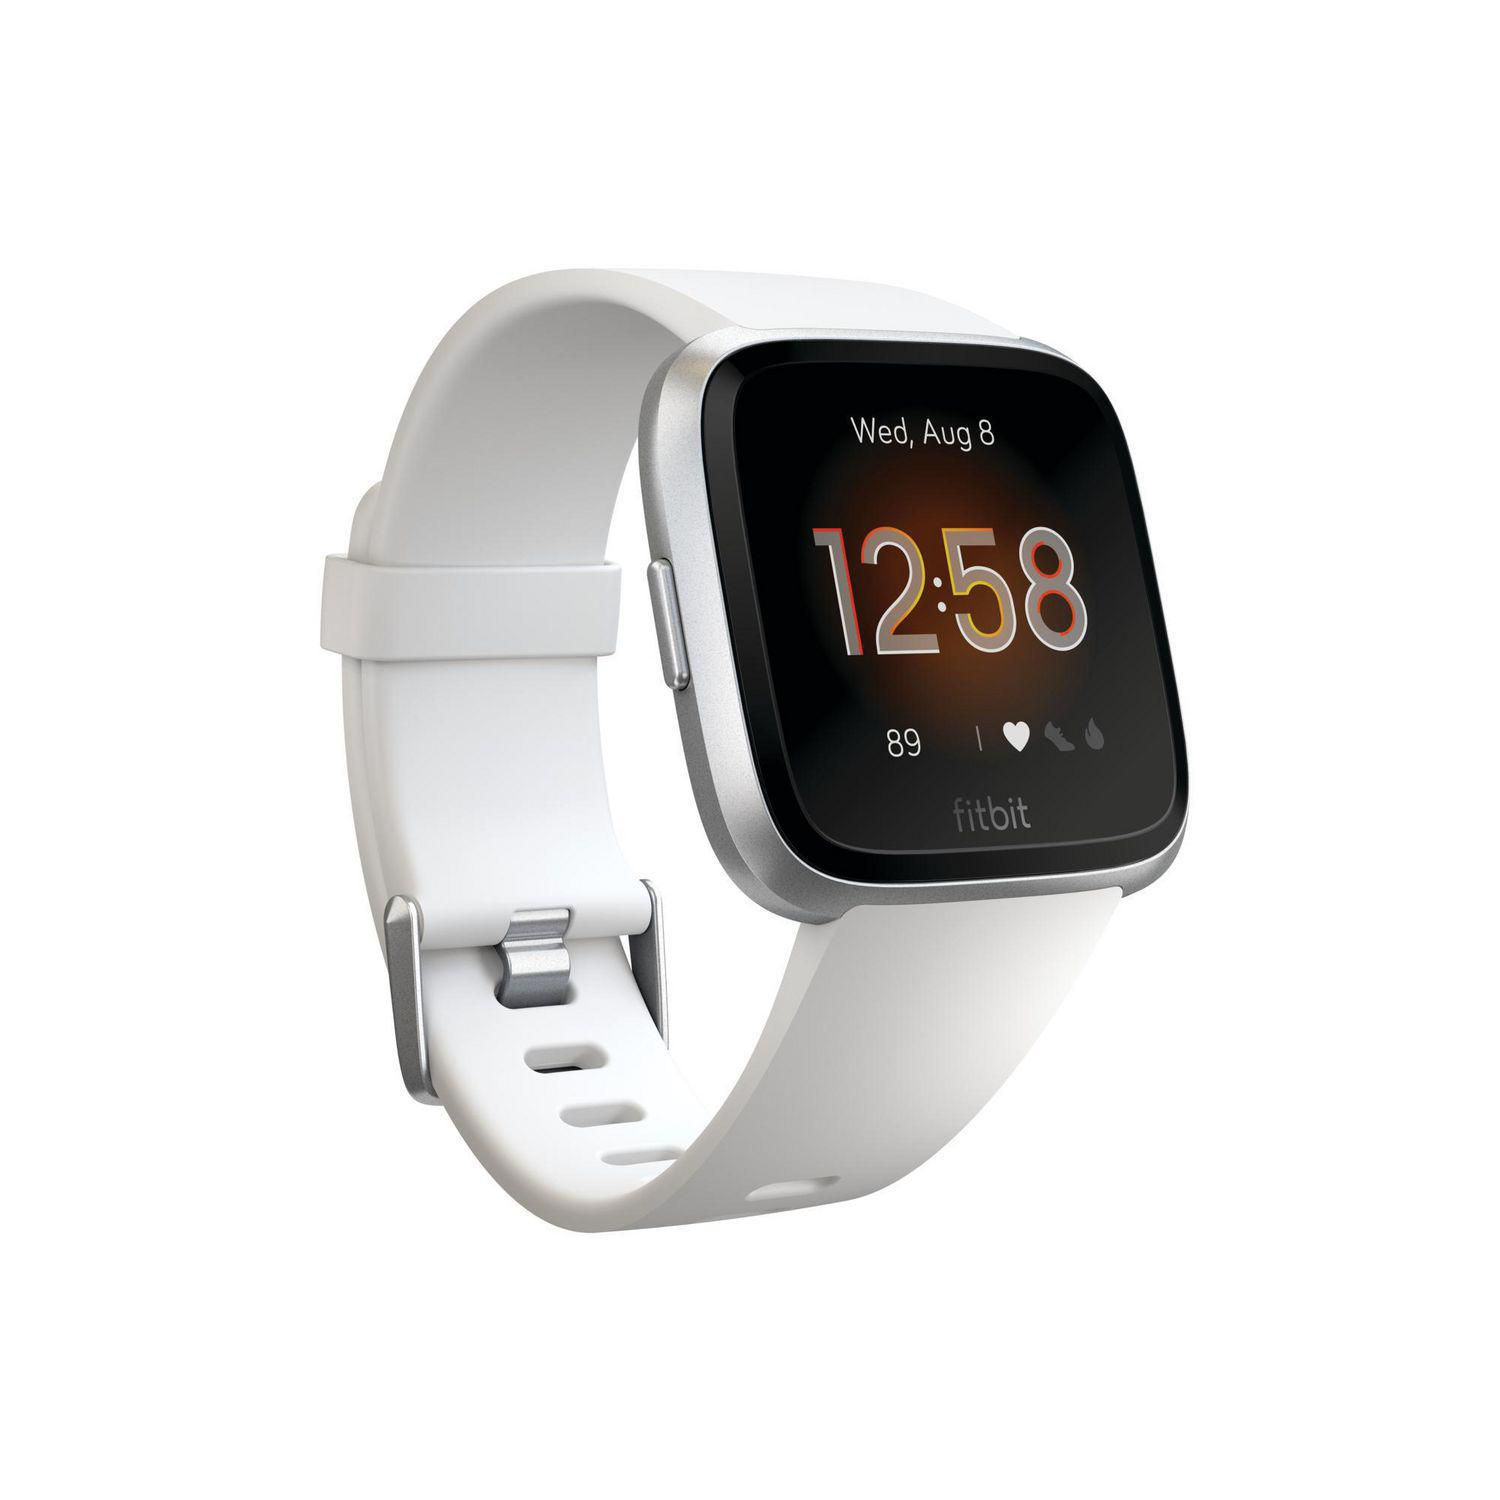 White Fitbit Versa Lite Edition with date, time and heart rate displayed on the screen - best Fitbit for weightlifting